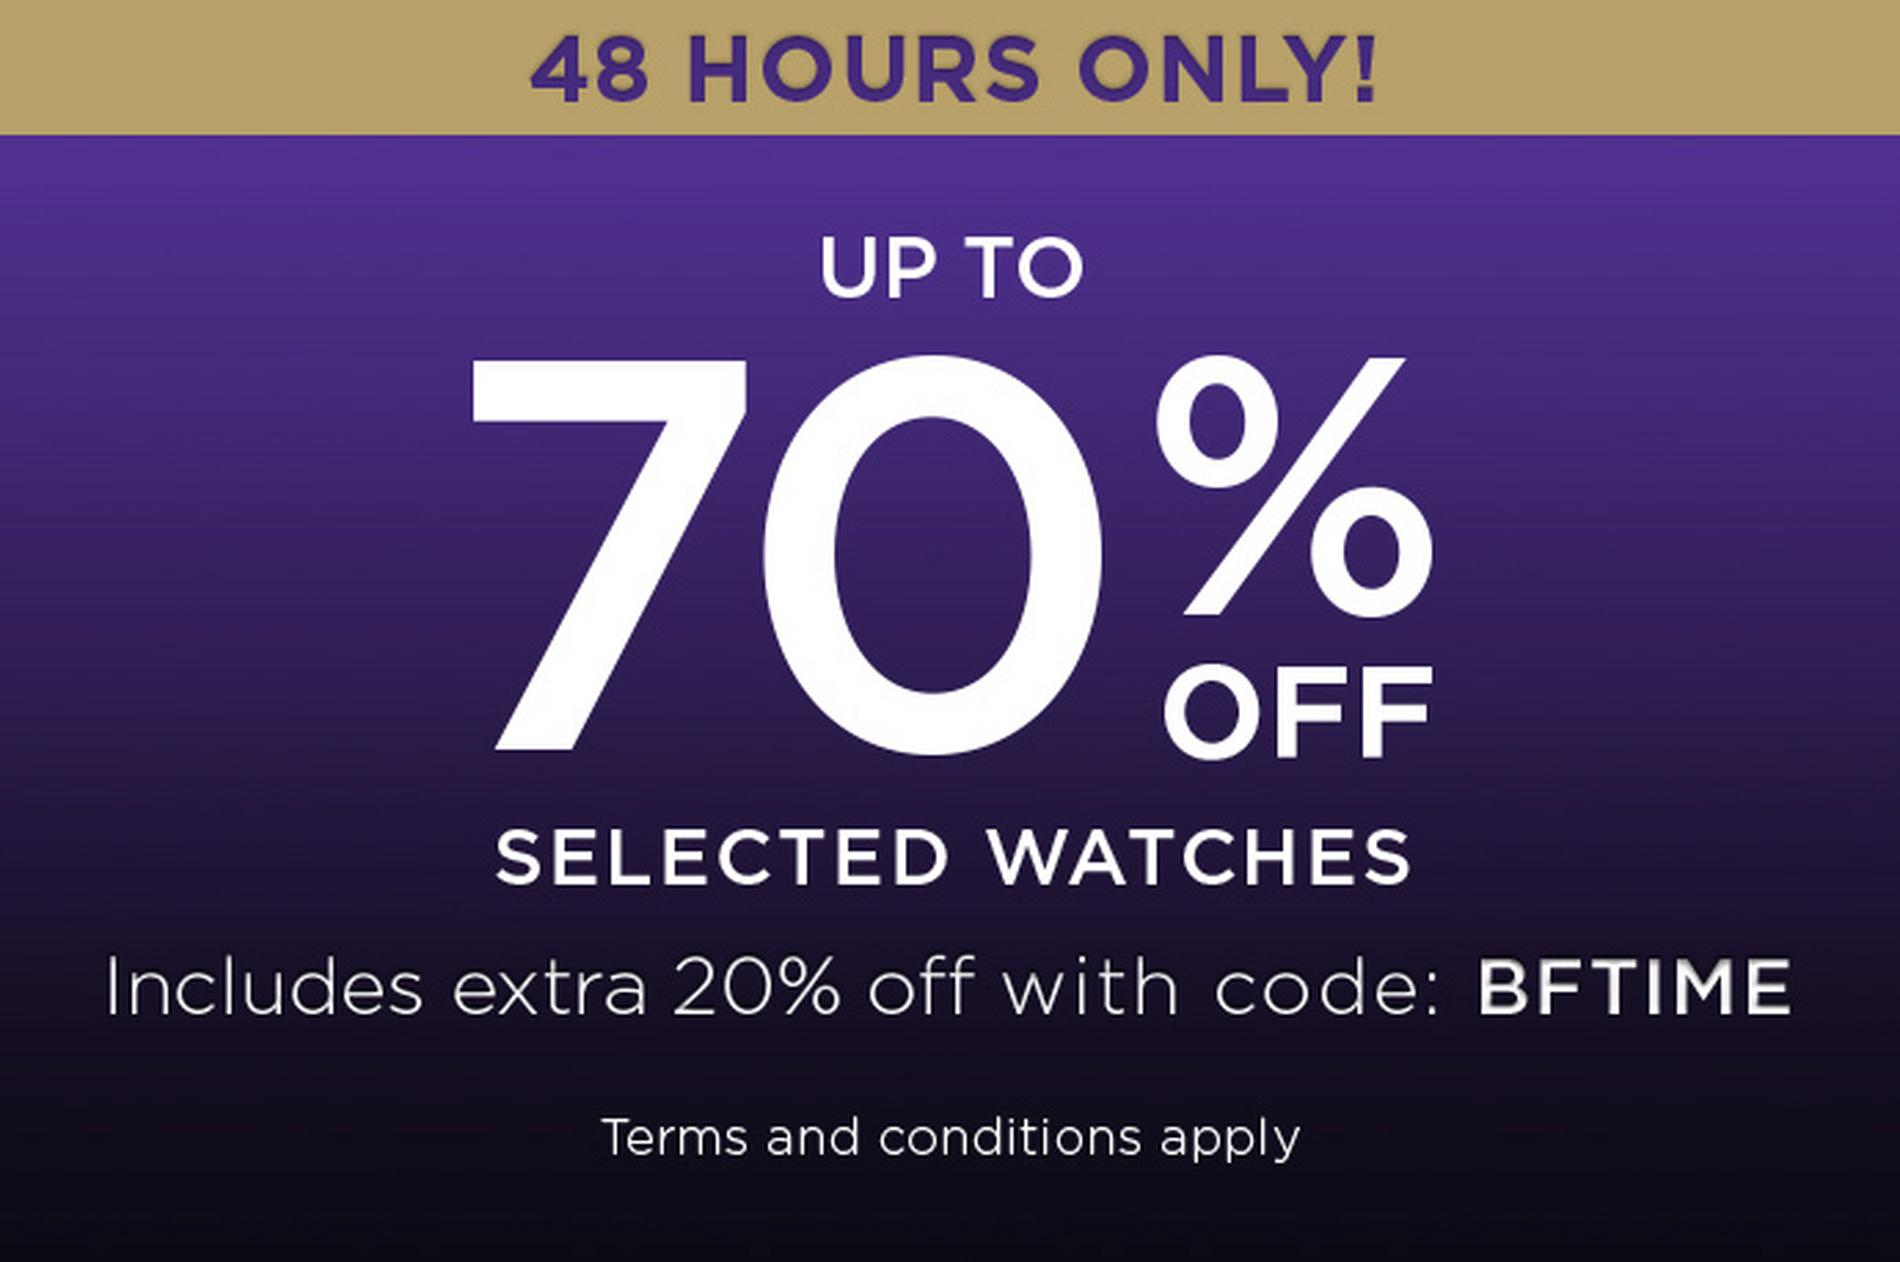 48 hours only! up to 70% off selected watches